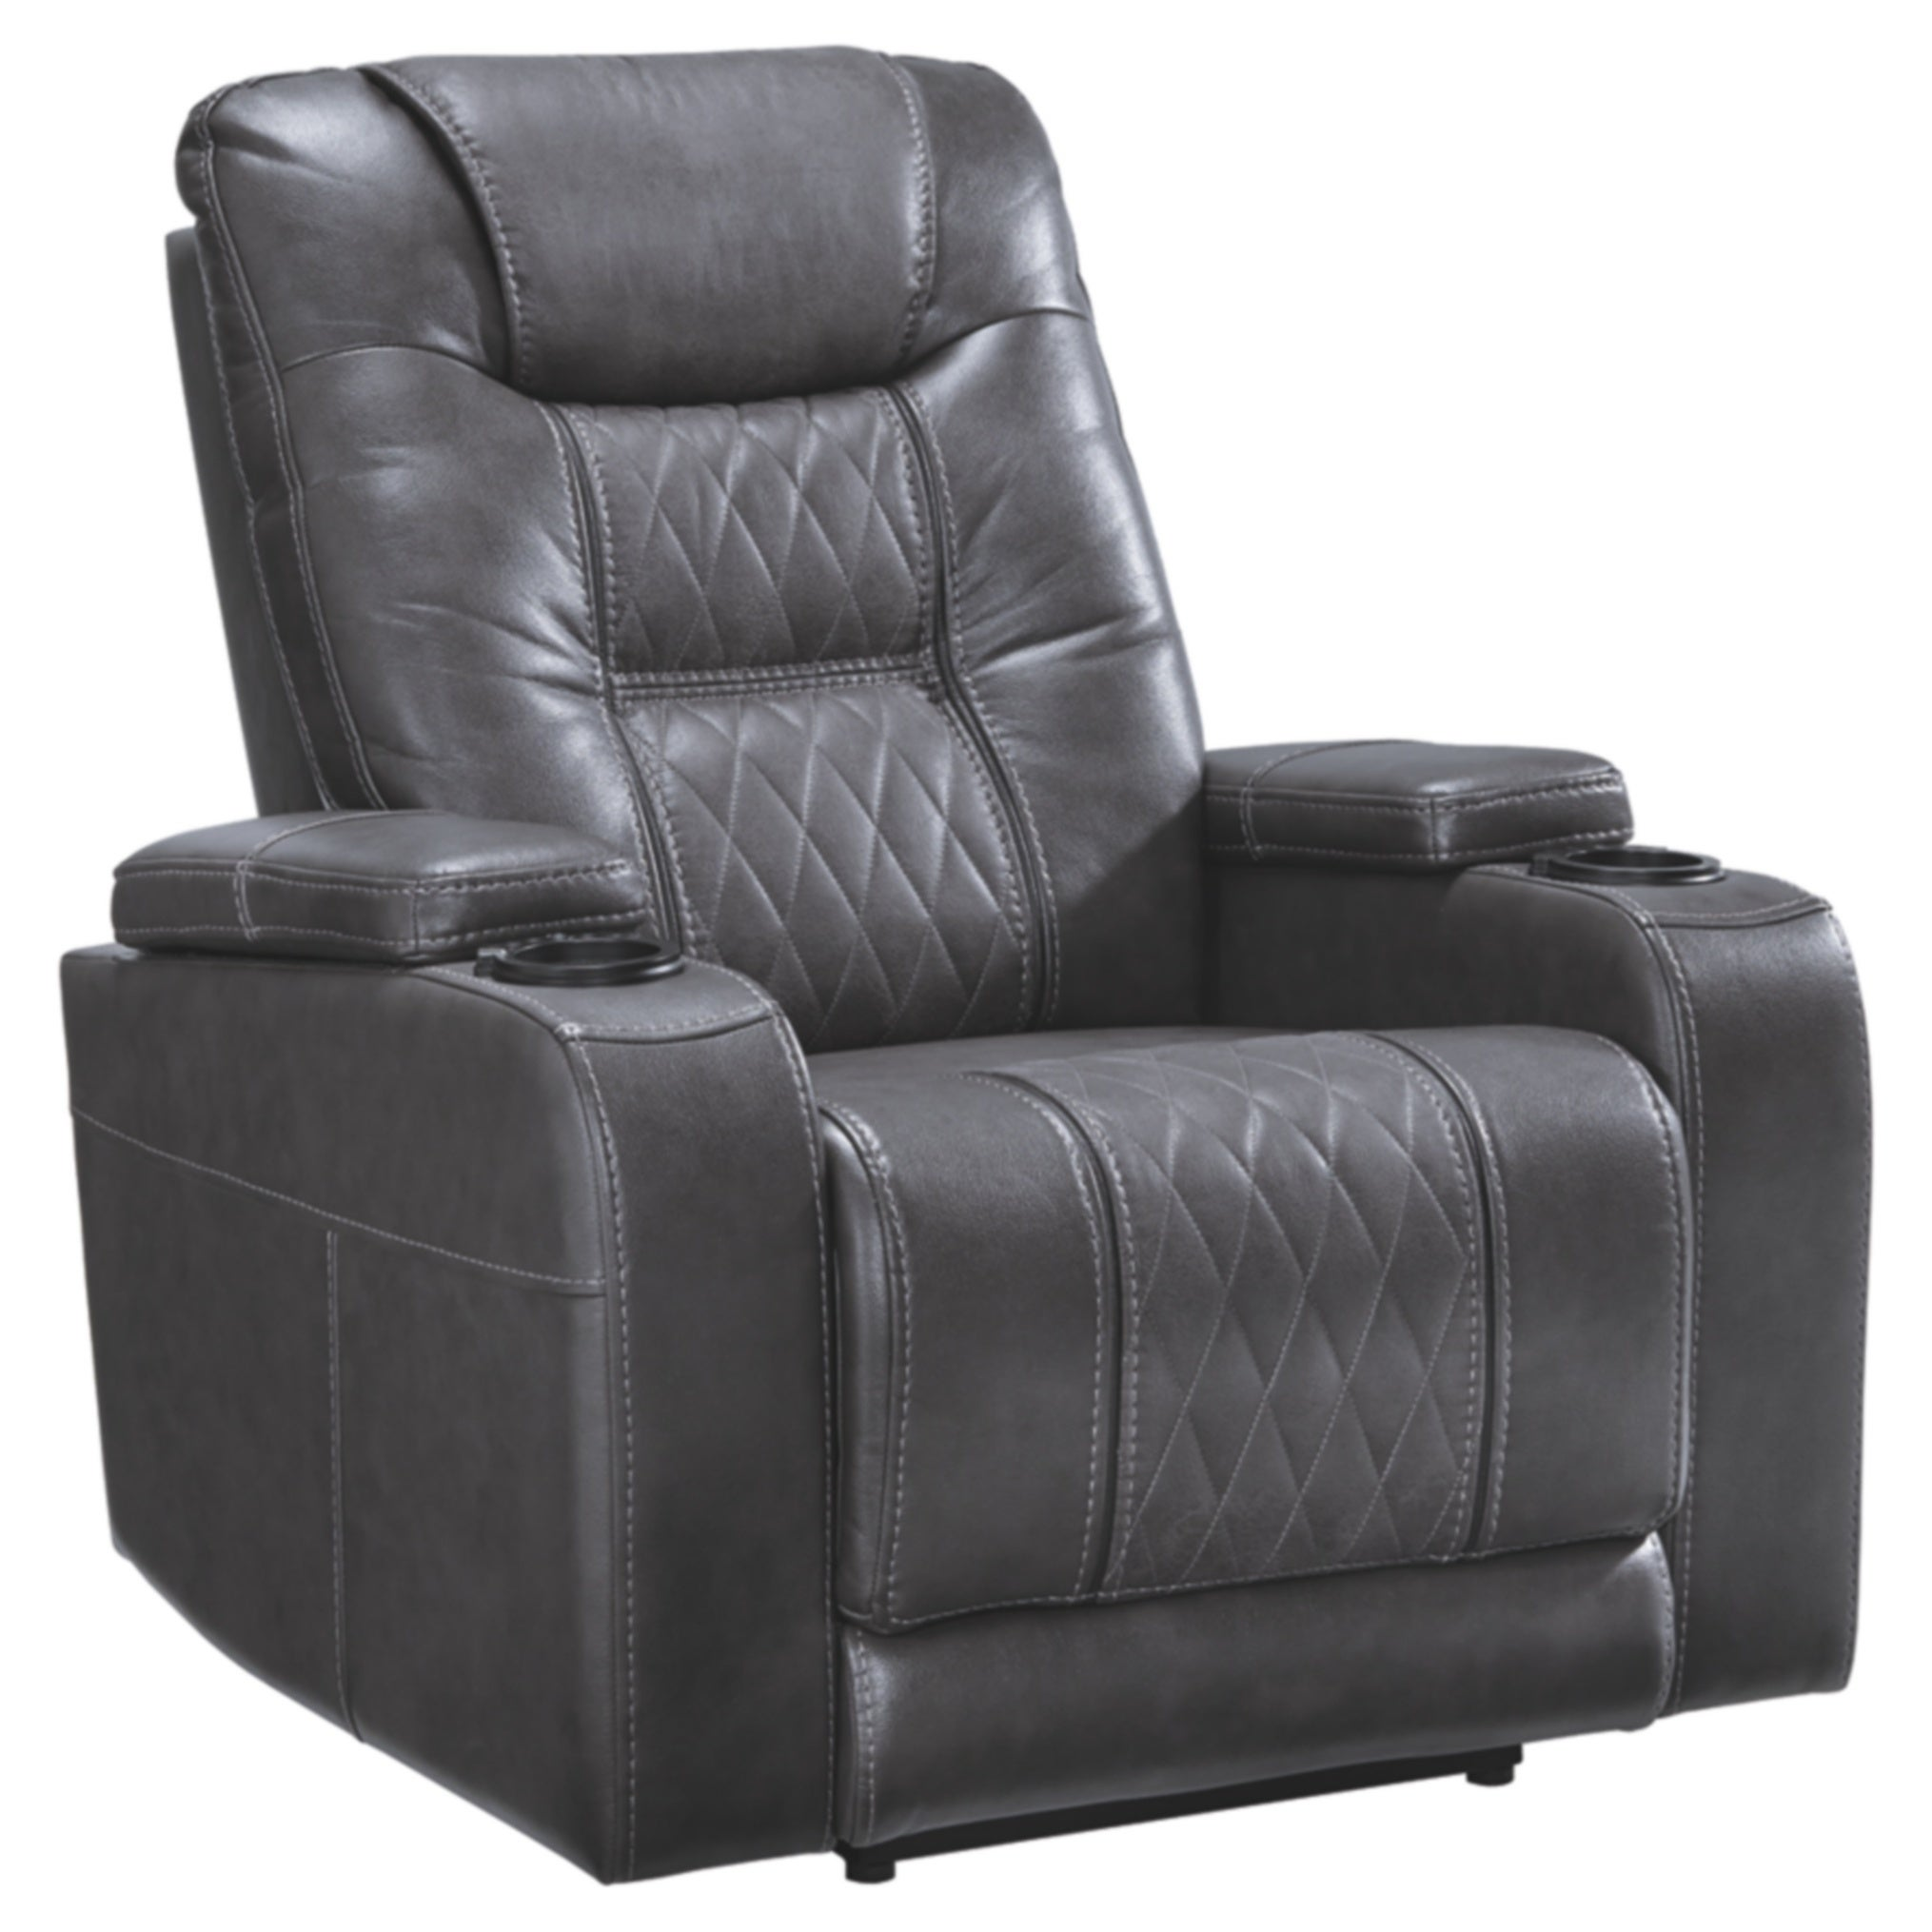 Signature Design by Ashley Gray Composer Power Recliner Grey